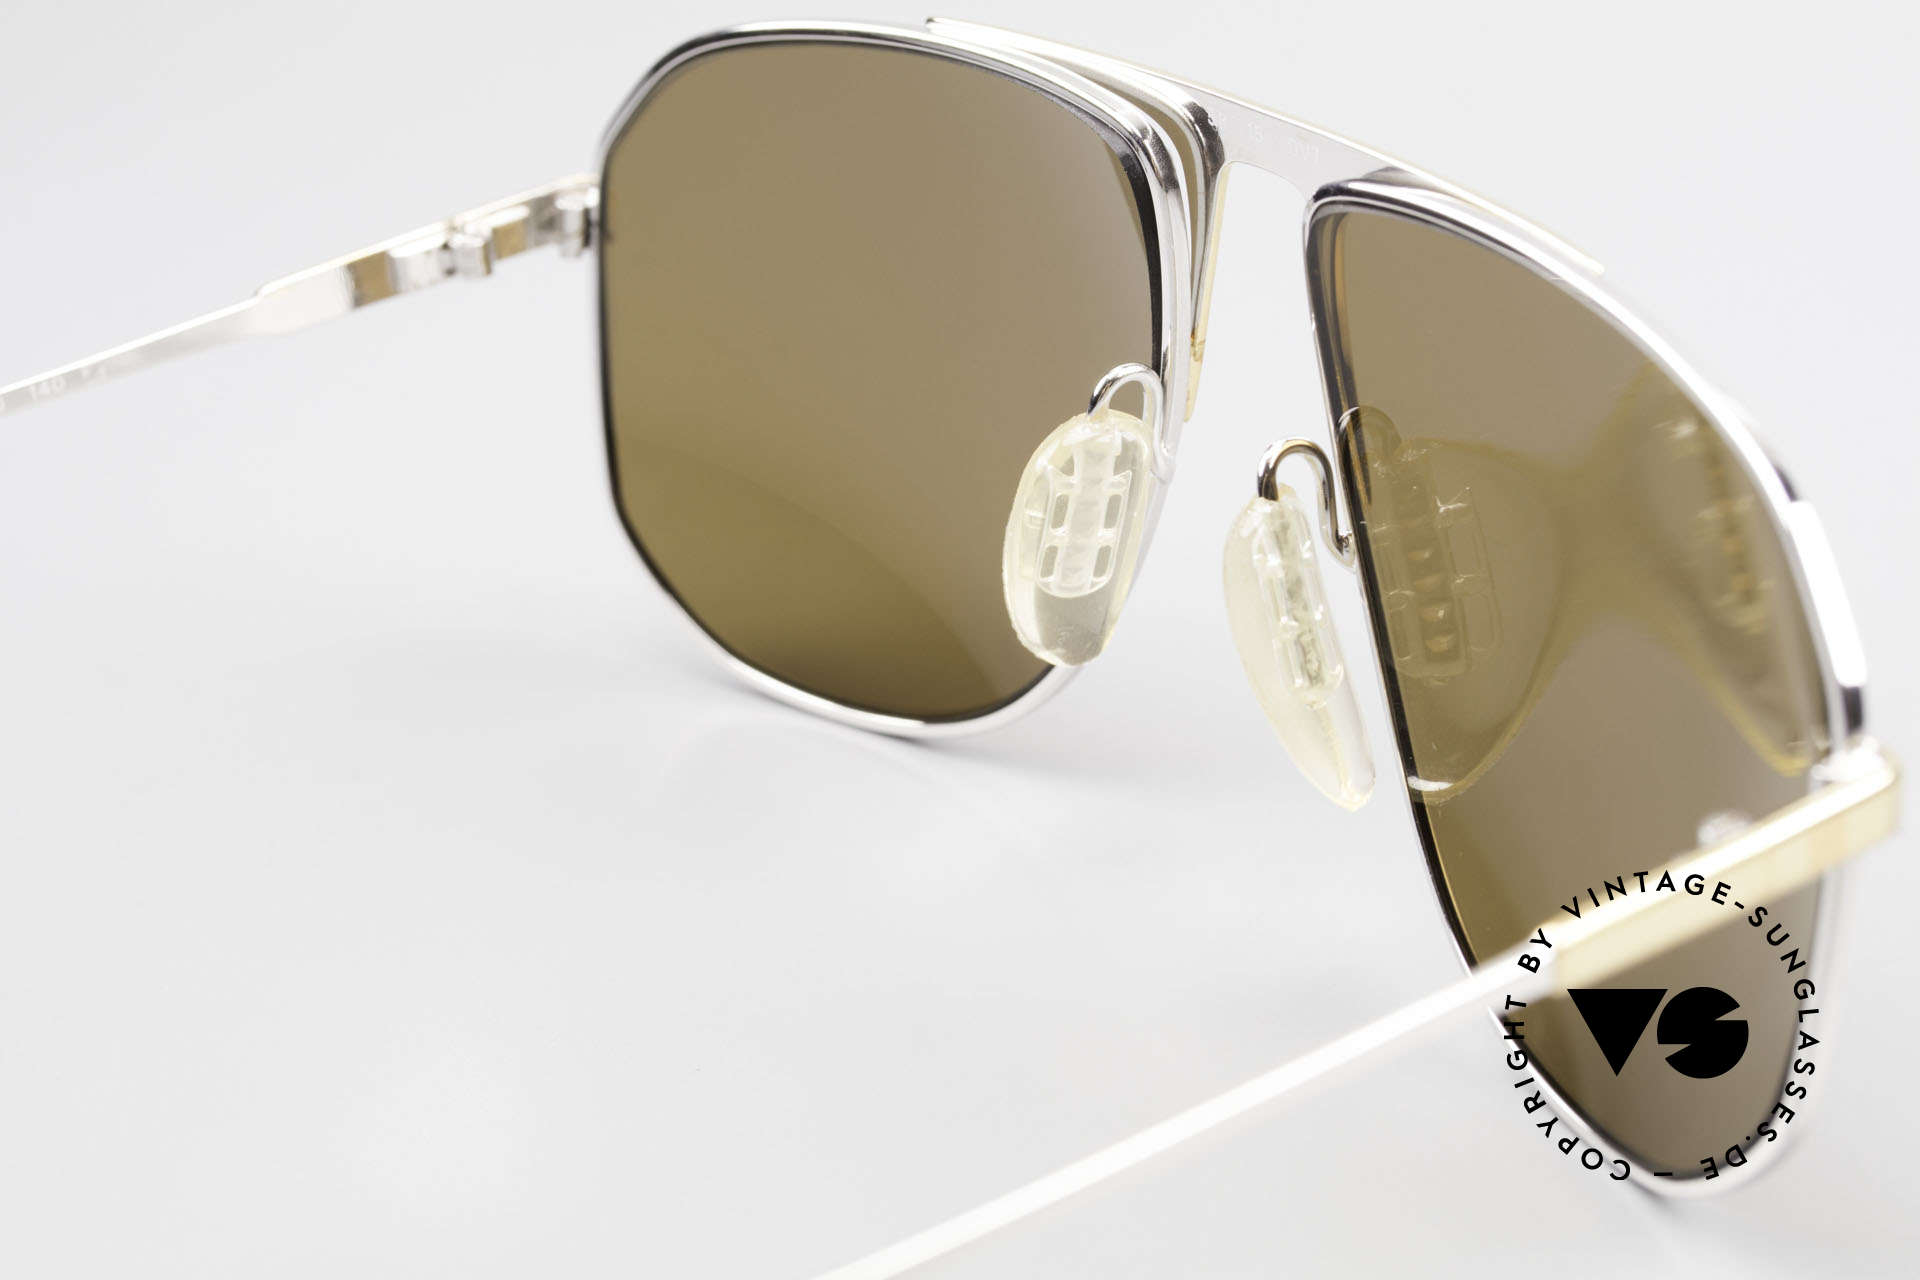 Zeiss 5871 80's Men's Quality Sunglasses, unworn (like all our premium Zeiss vintage sunglasses), Made for Men